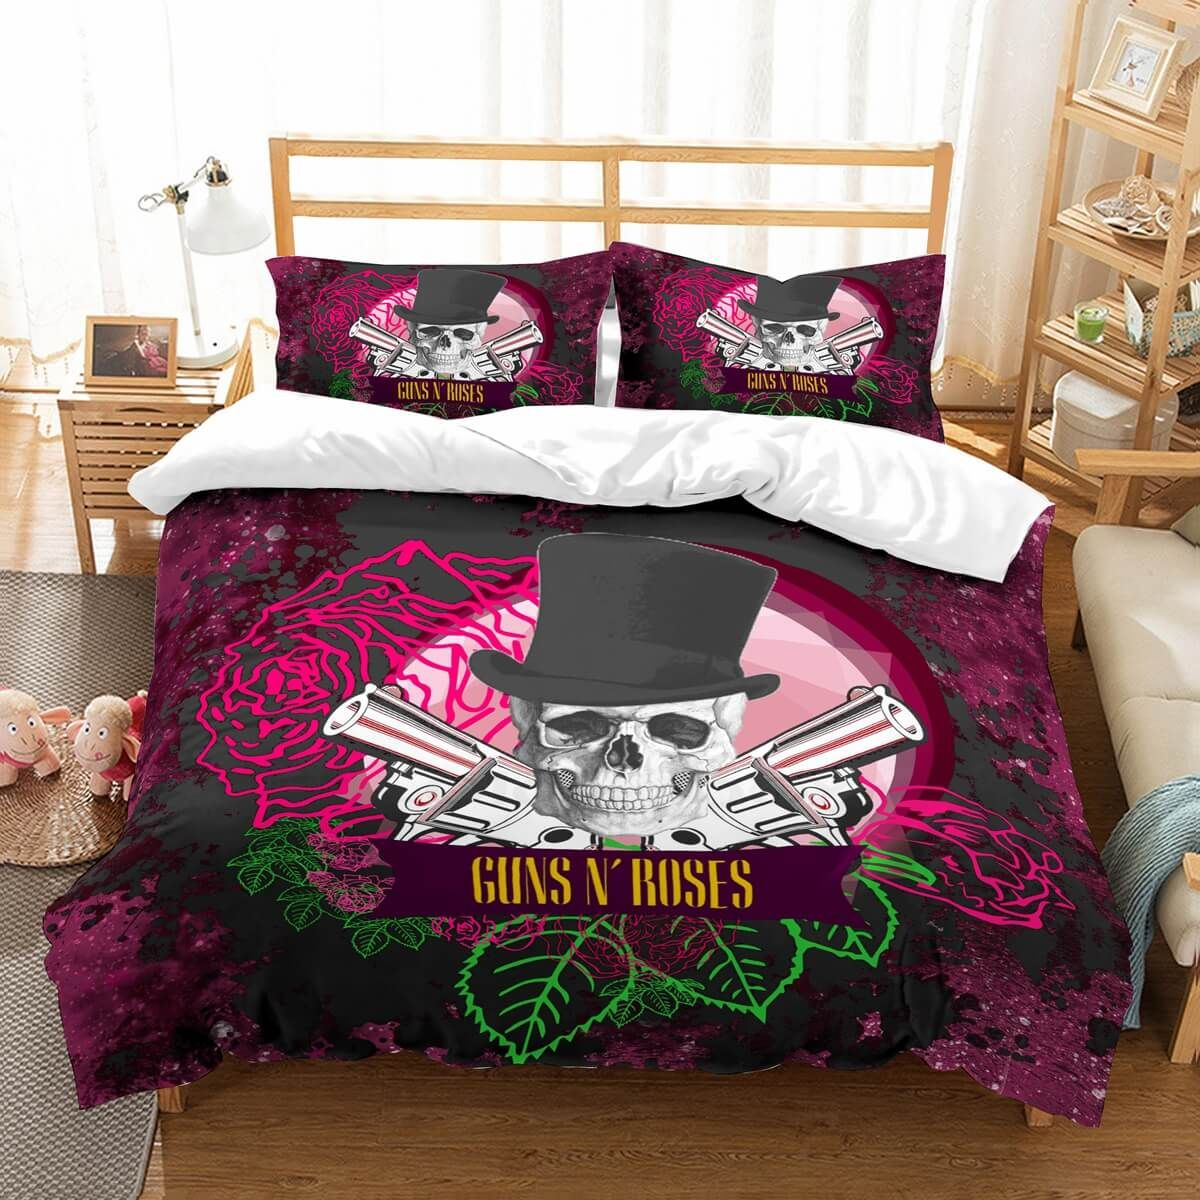 3D Customize Guns N\' Roses Bedding Set Duvet Cover Set ...